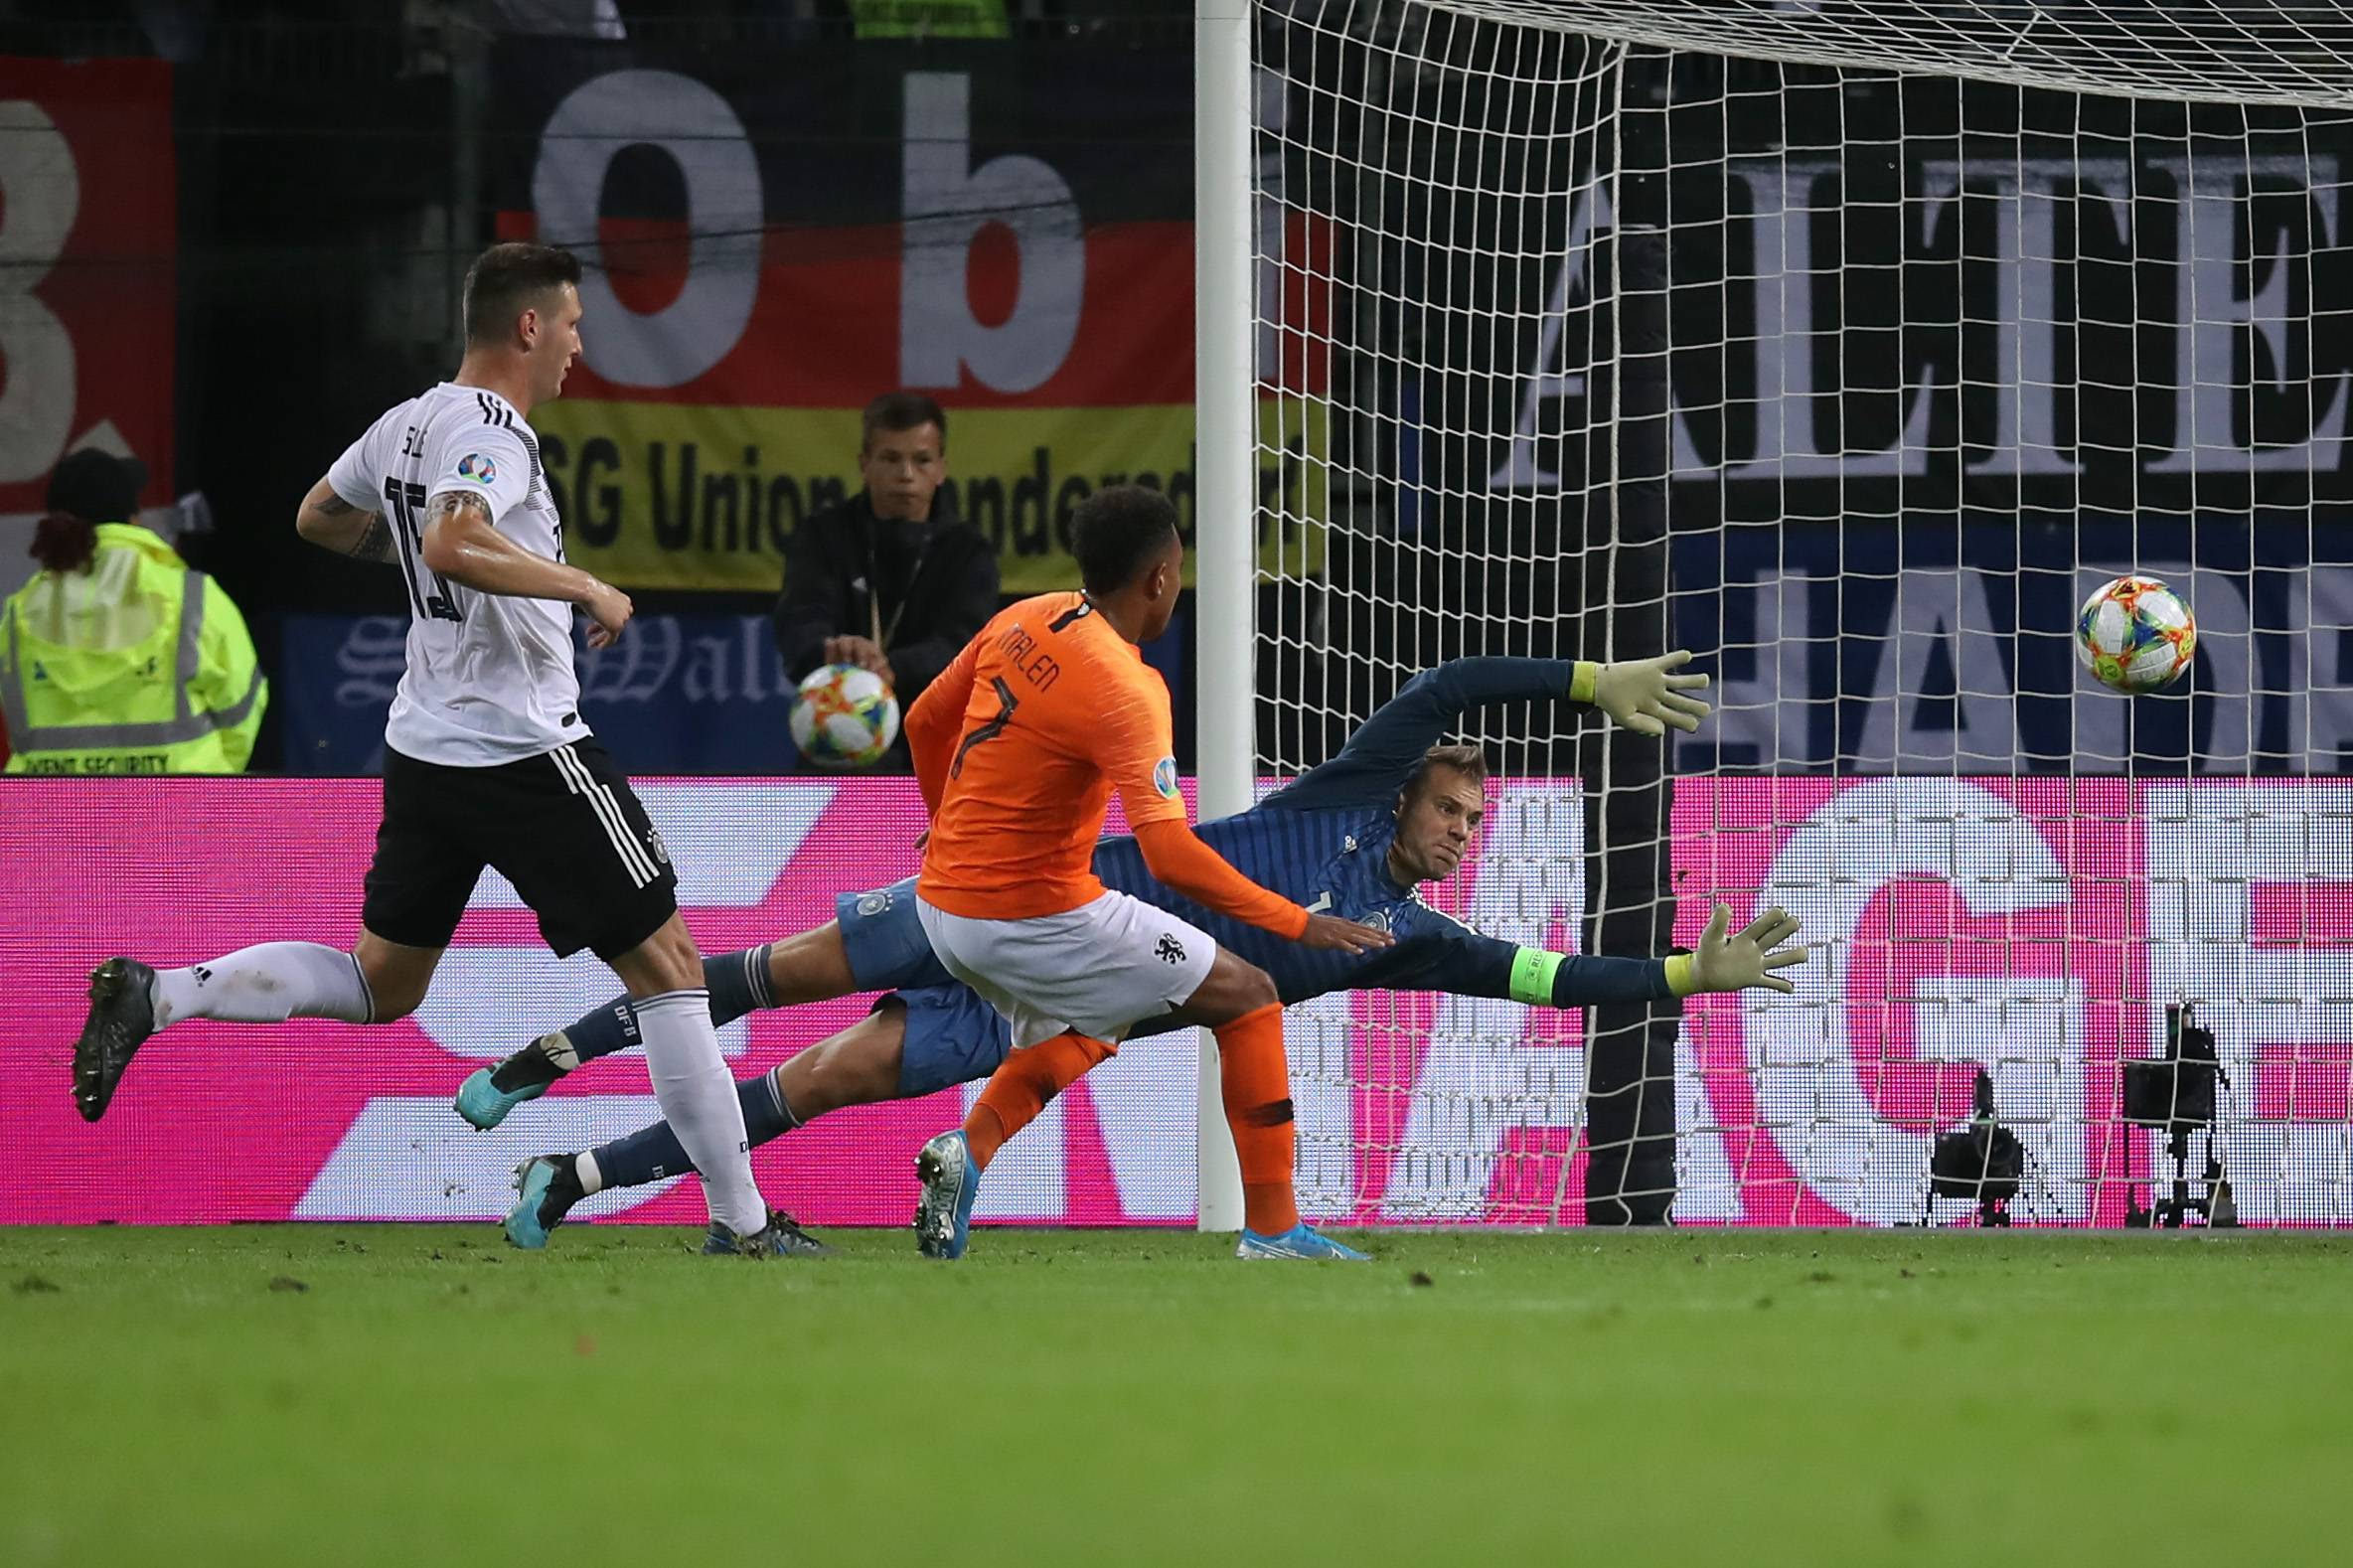 Netherlands Inflict Major Defeat on Germany in Euro 2020 Qualifying